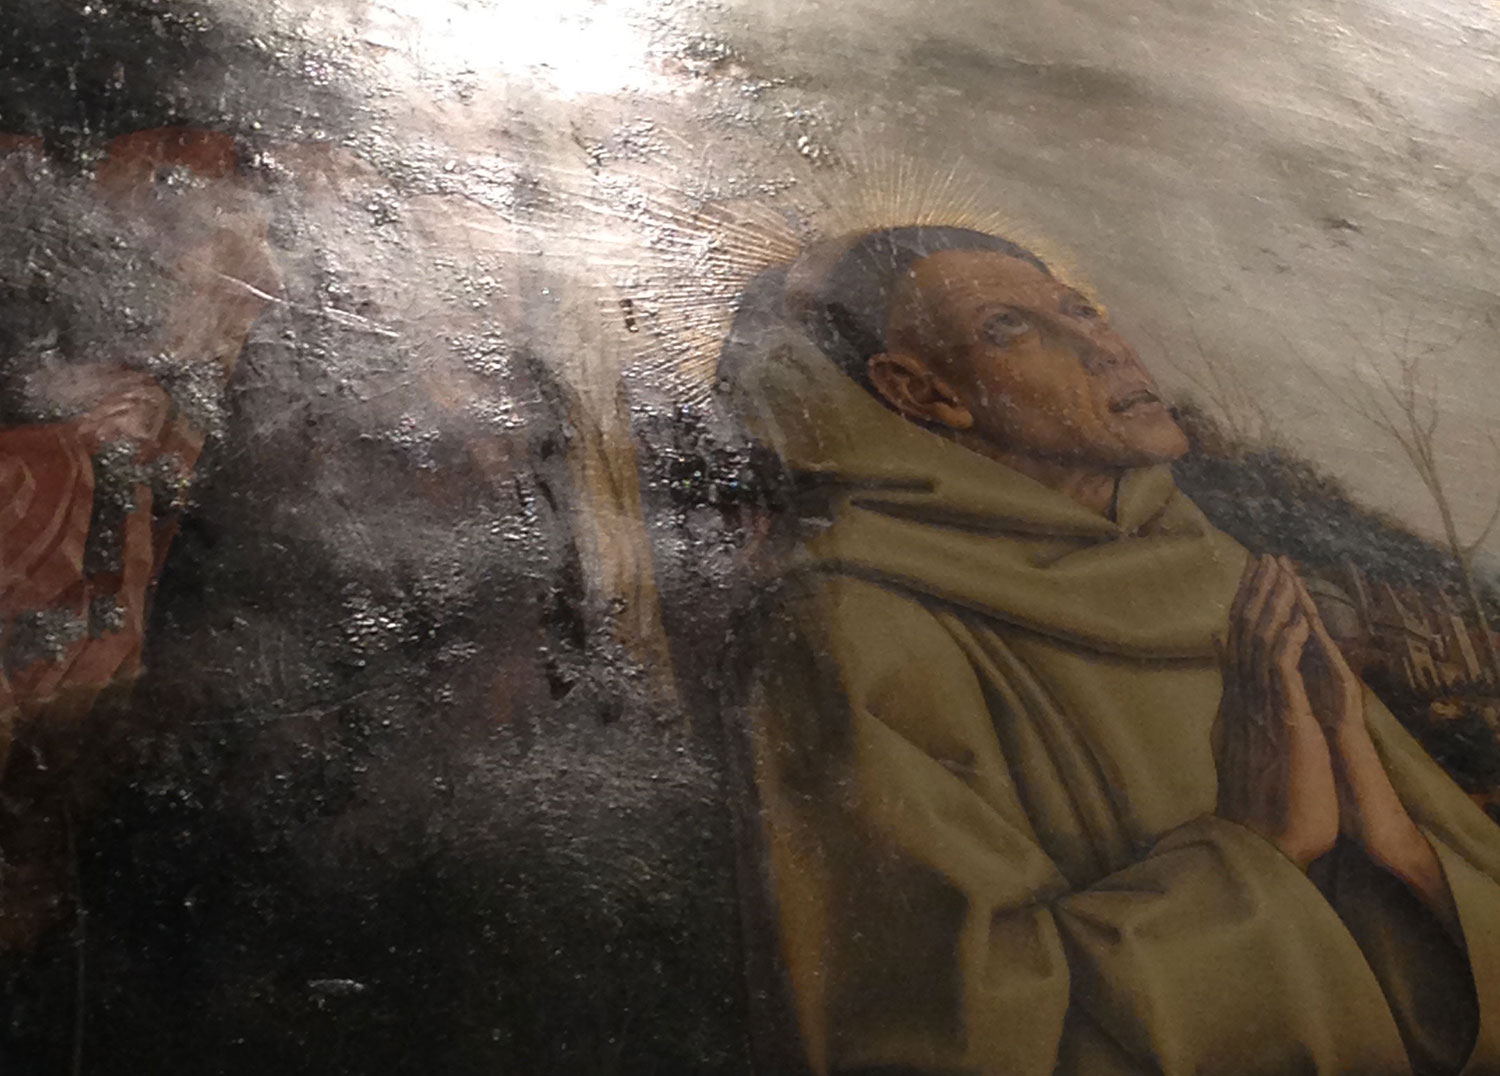 Fig. 2. Detail of The Vision of the Blessed Gabriele showing raised passages of paint and mordant gilding in reflected light. Photograph taken by the author.